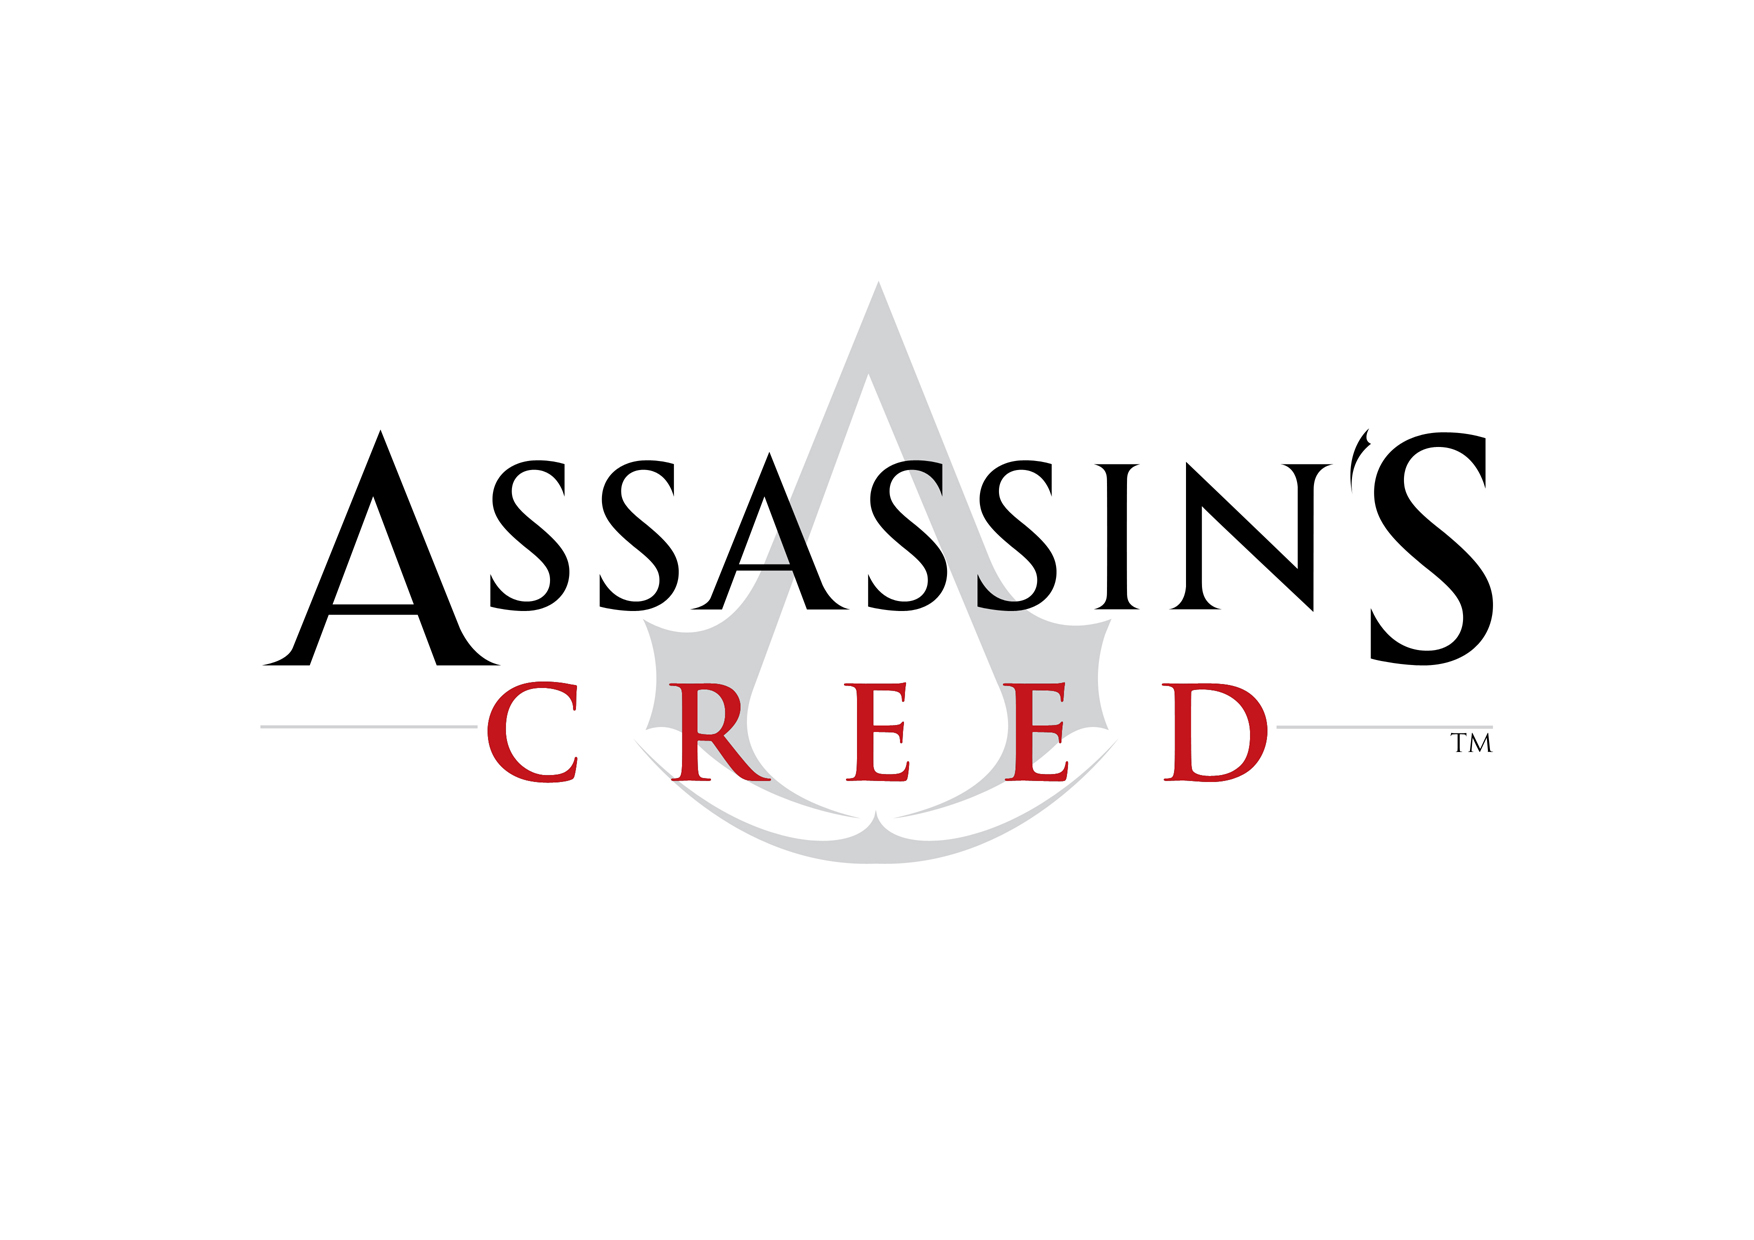 Five Suggestions For Assassin's Creed 3